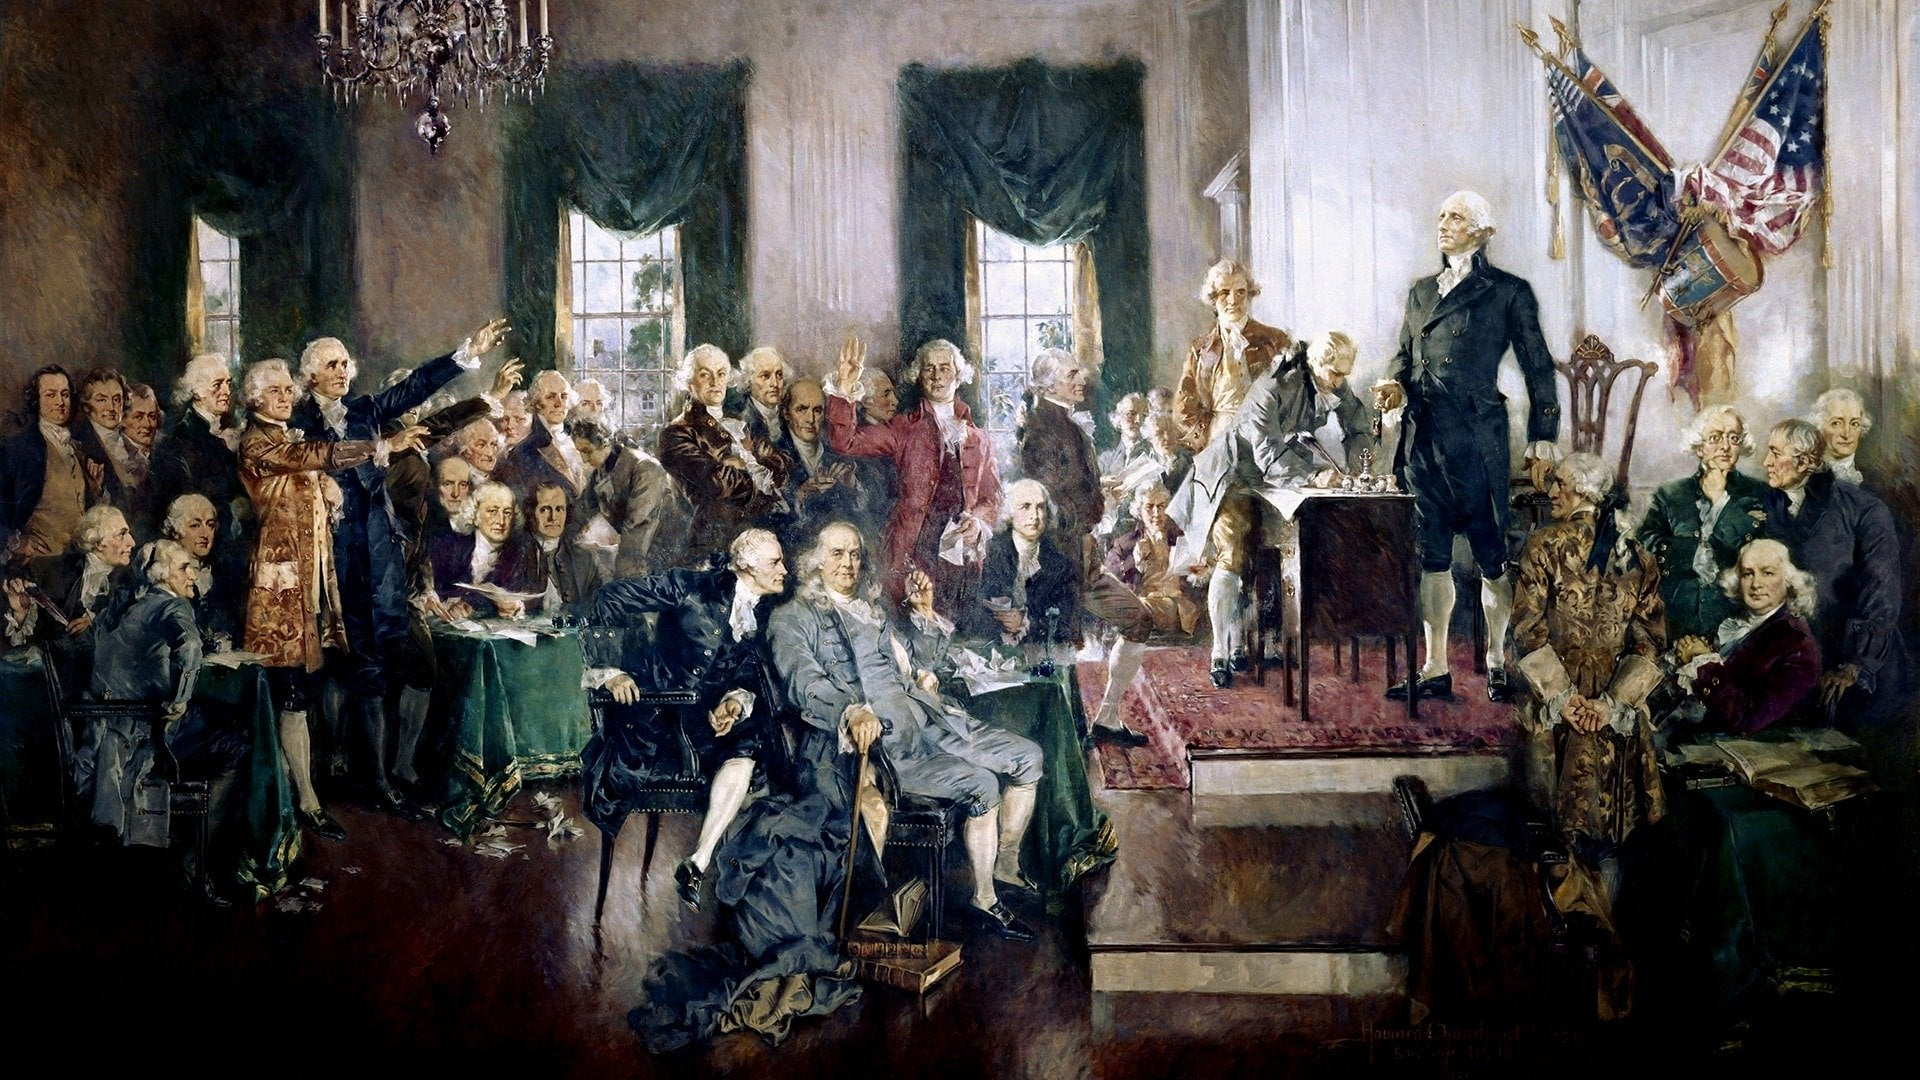 Founding Fathers: Masters of Deceit